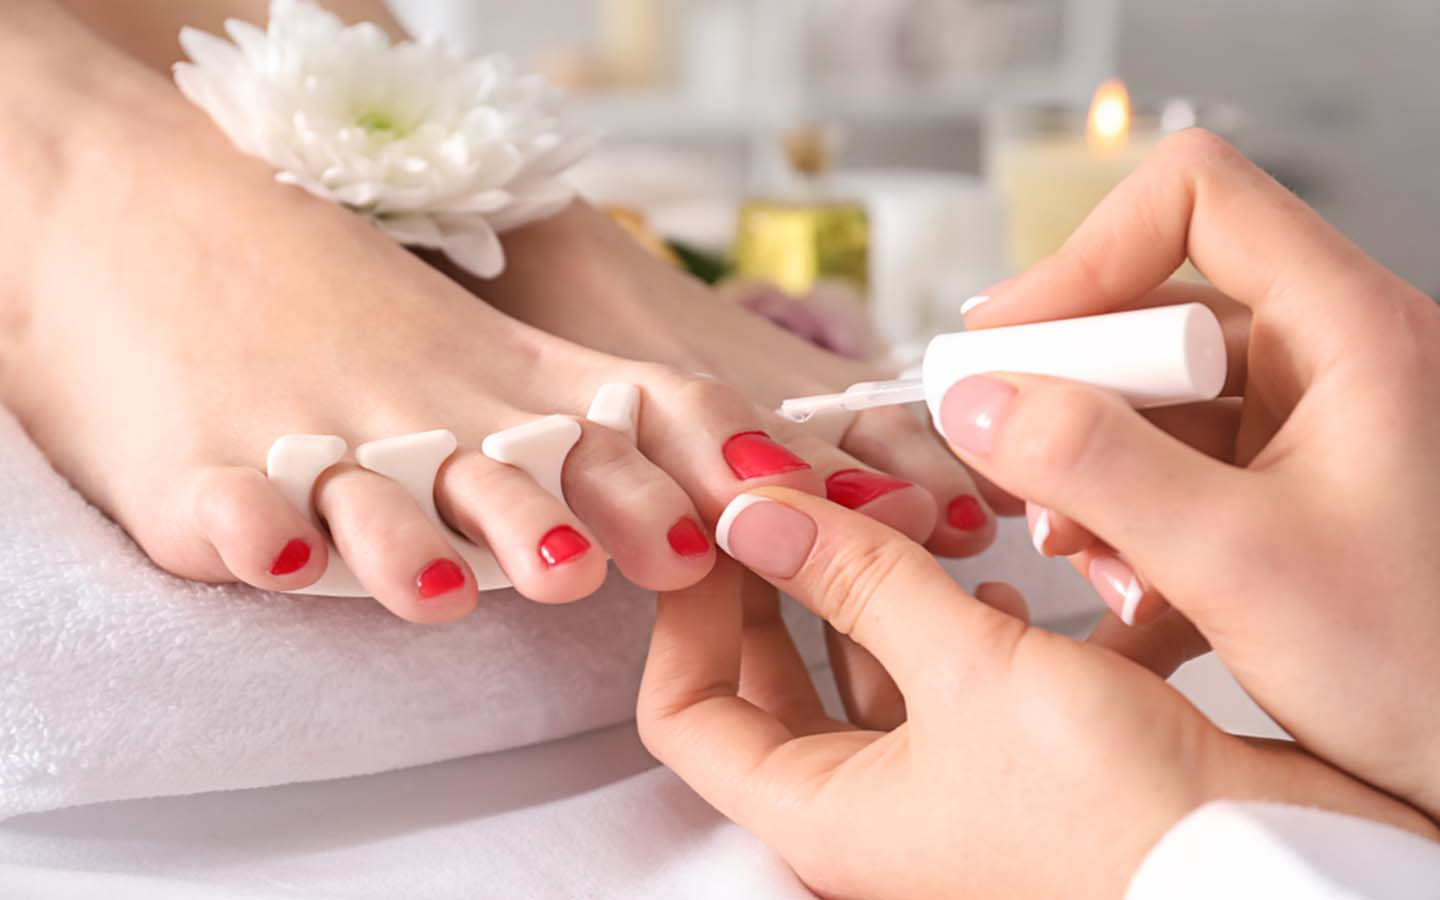 A girl is applying nail polish on the toe nails of a lady